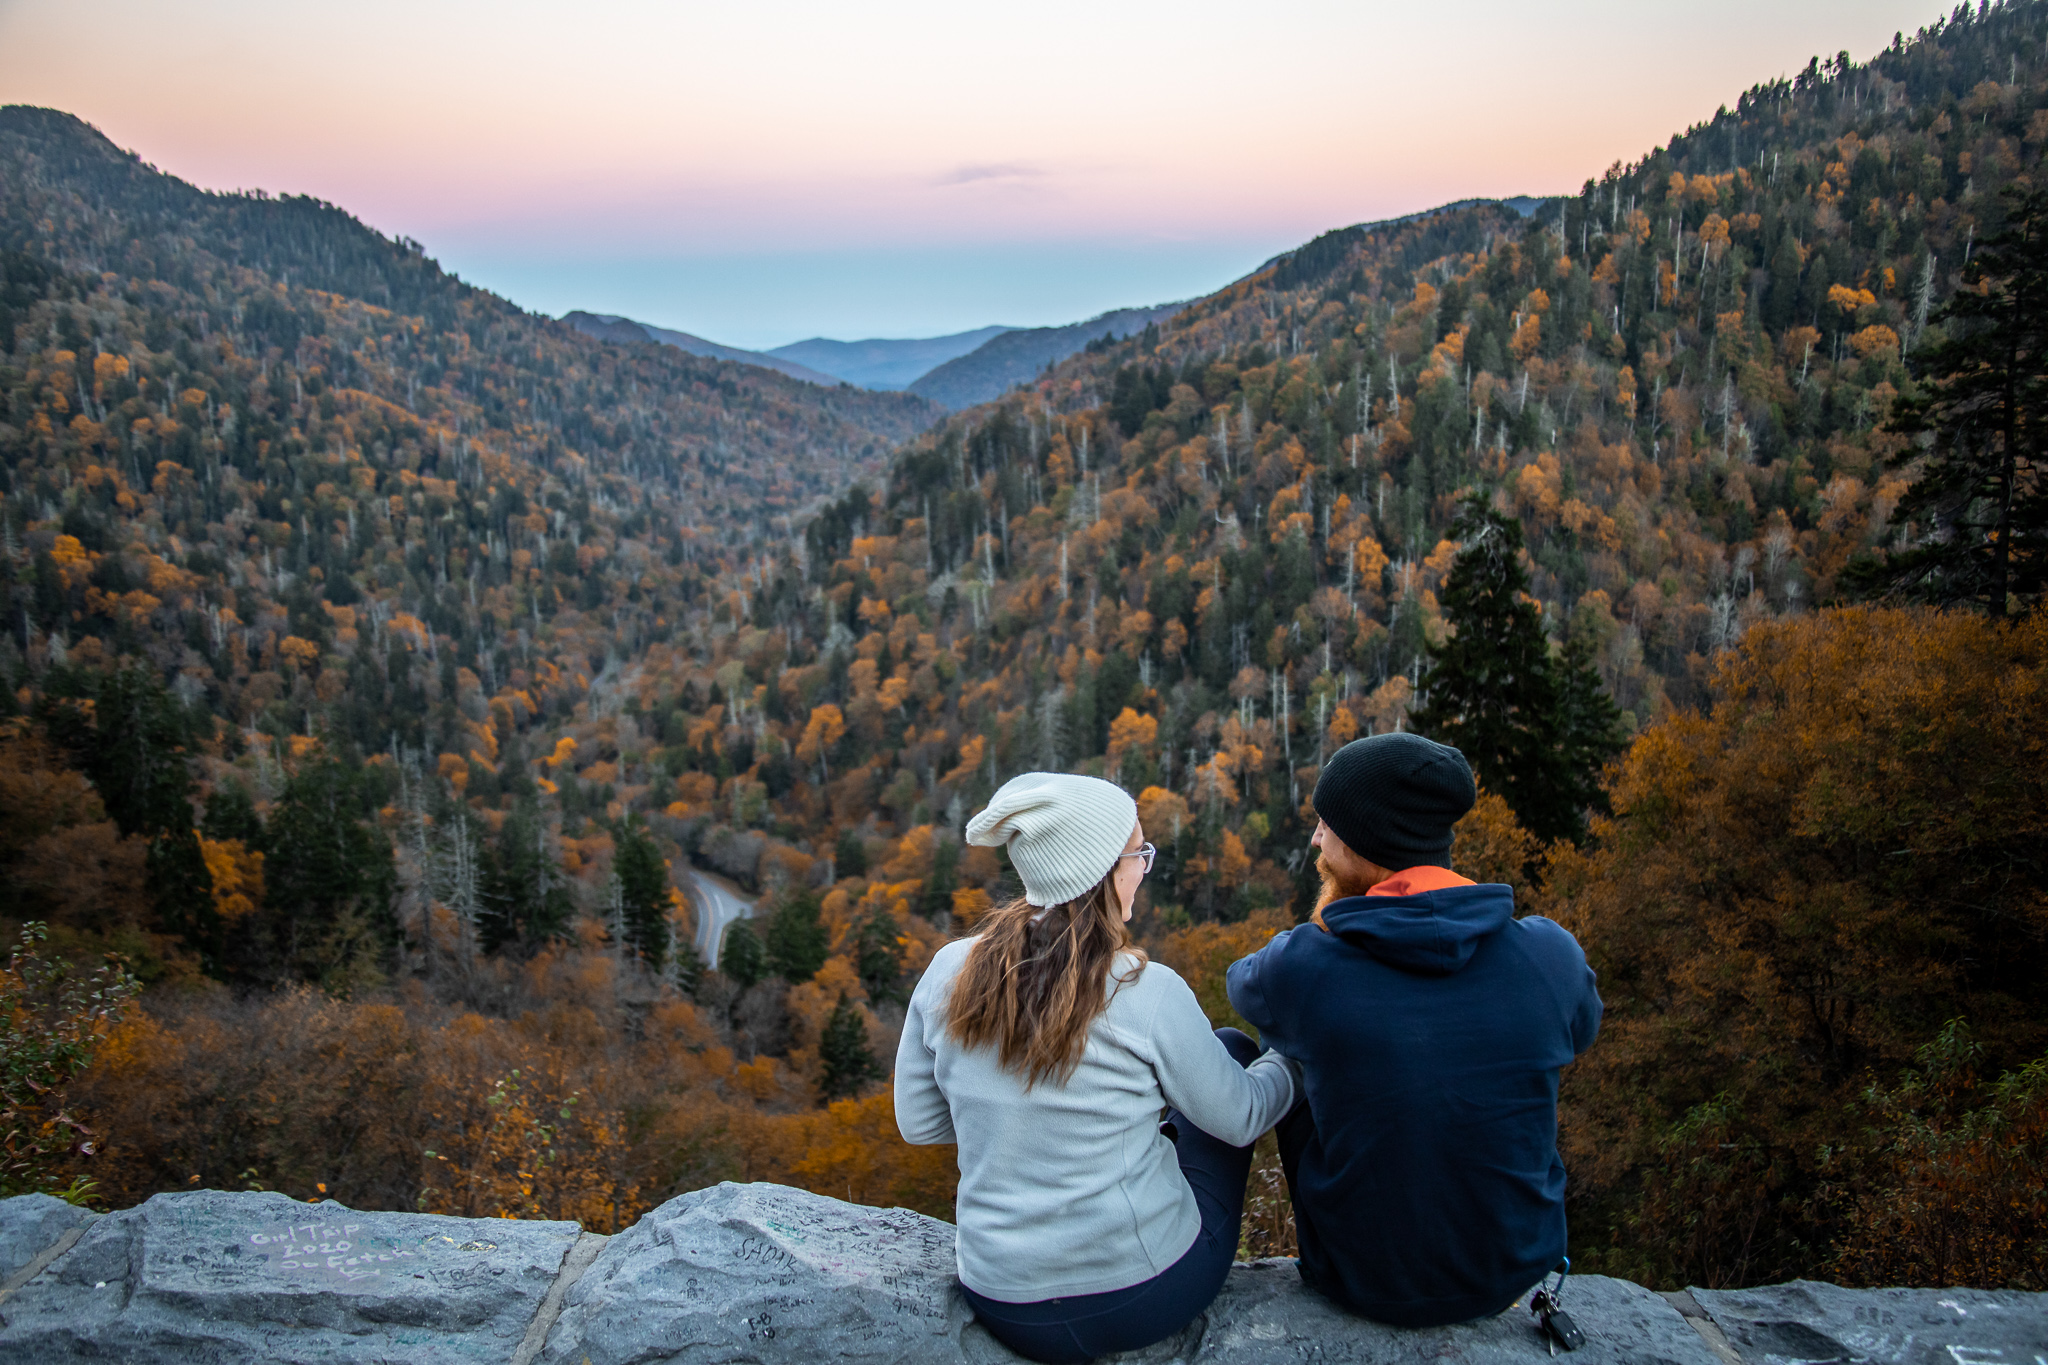 Two people sitting on a mountain